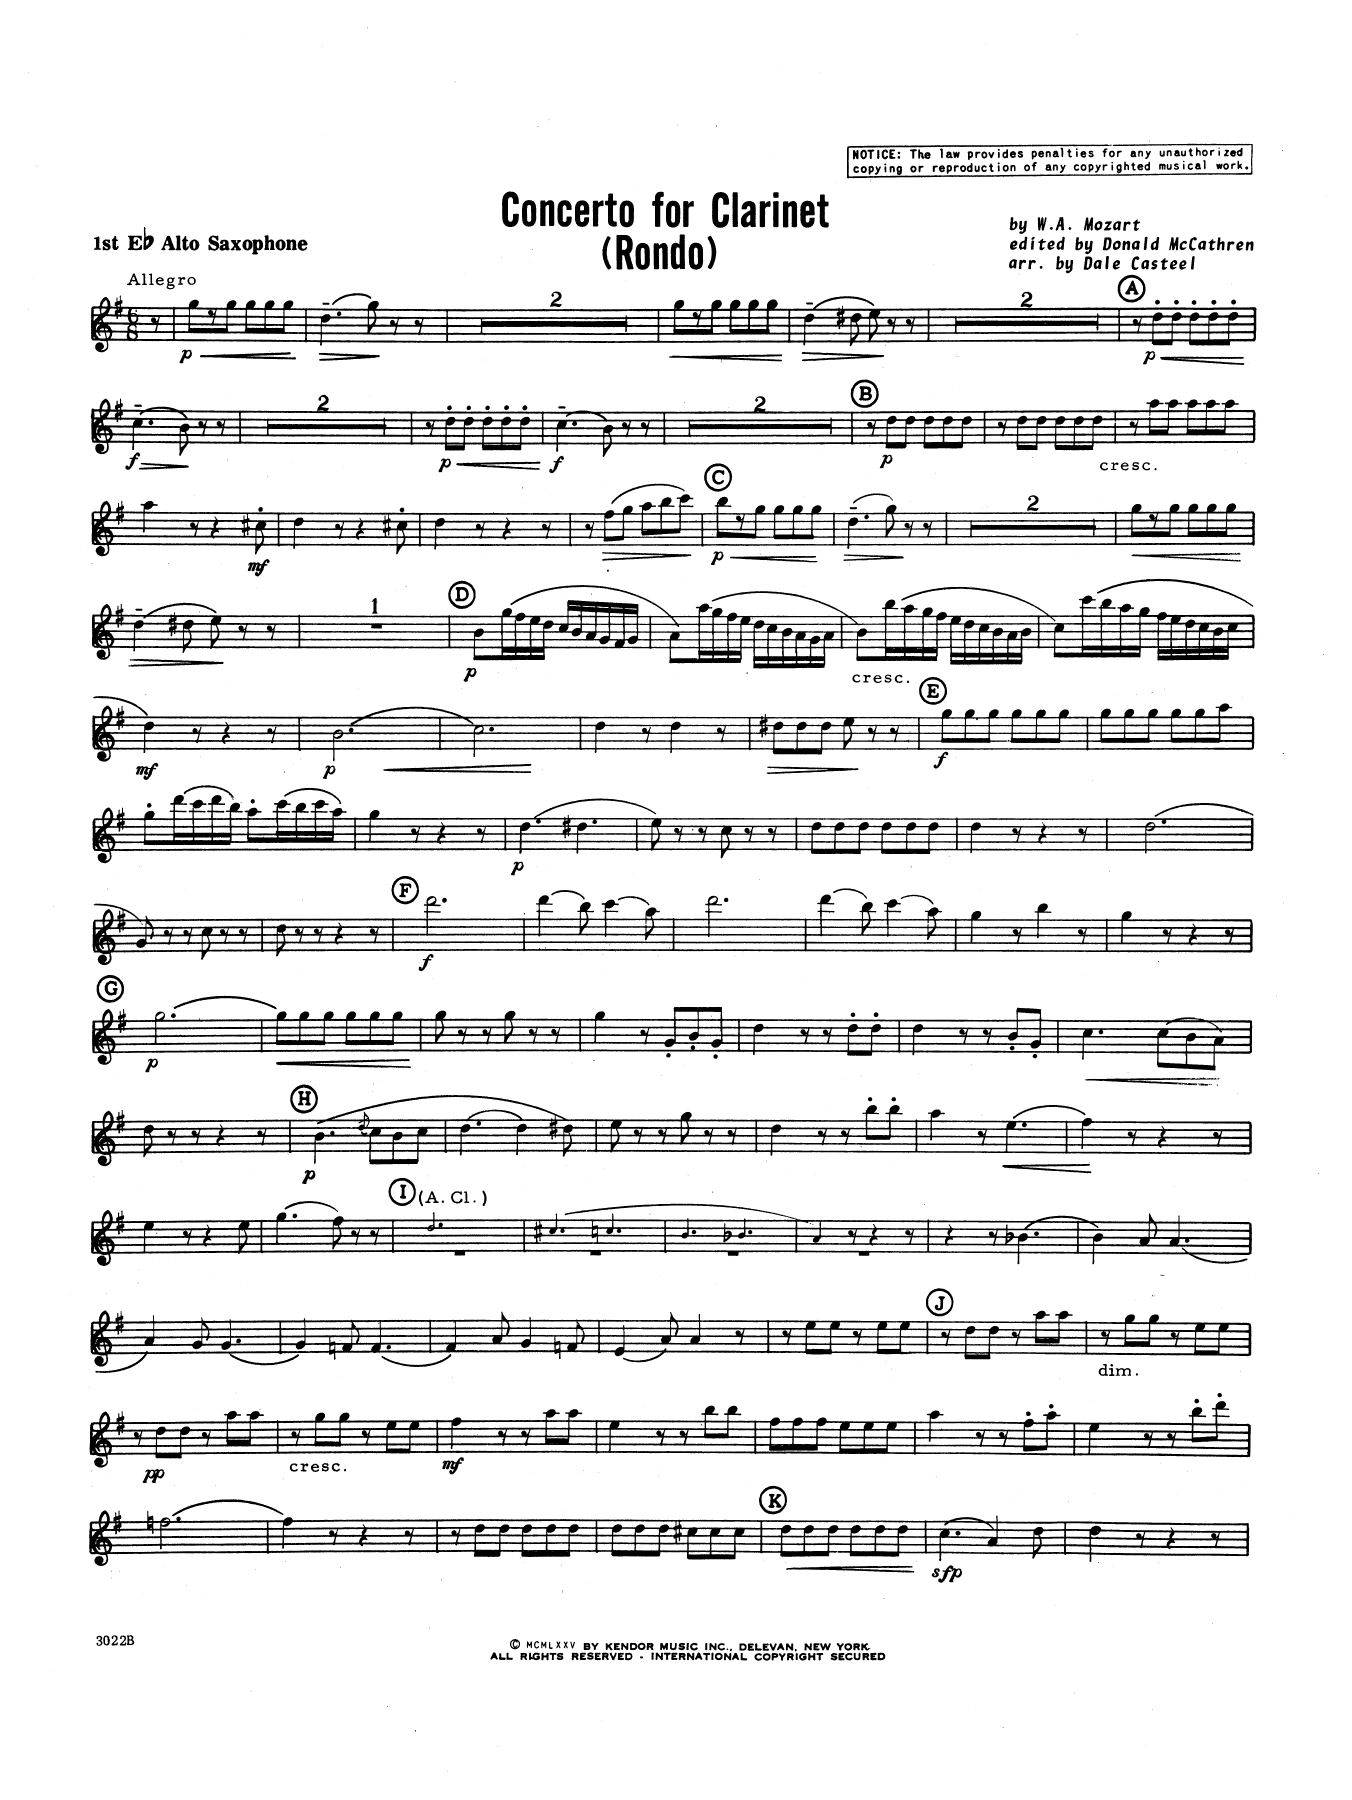 Donald McCathren and Dale Casteel Concerto For Clarinet - Rondo (3rd Movement) - K.622 - 1st Eb Alto Saxophone sheet music preview music notes and score for Concert Band including 3 page(s)